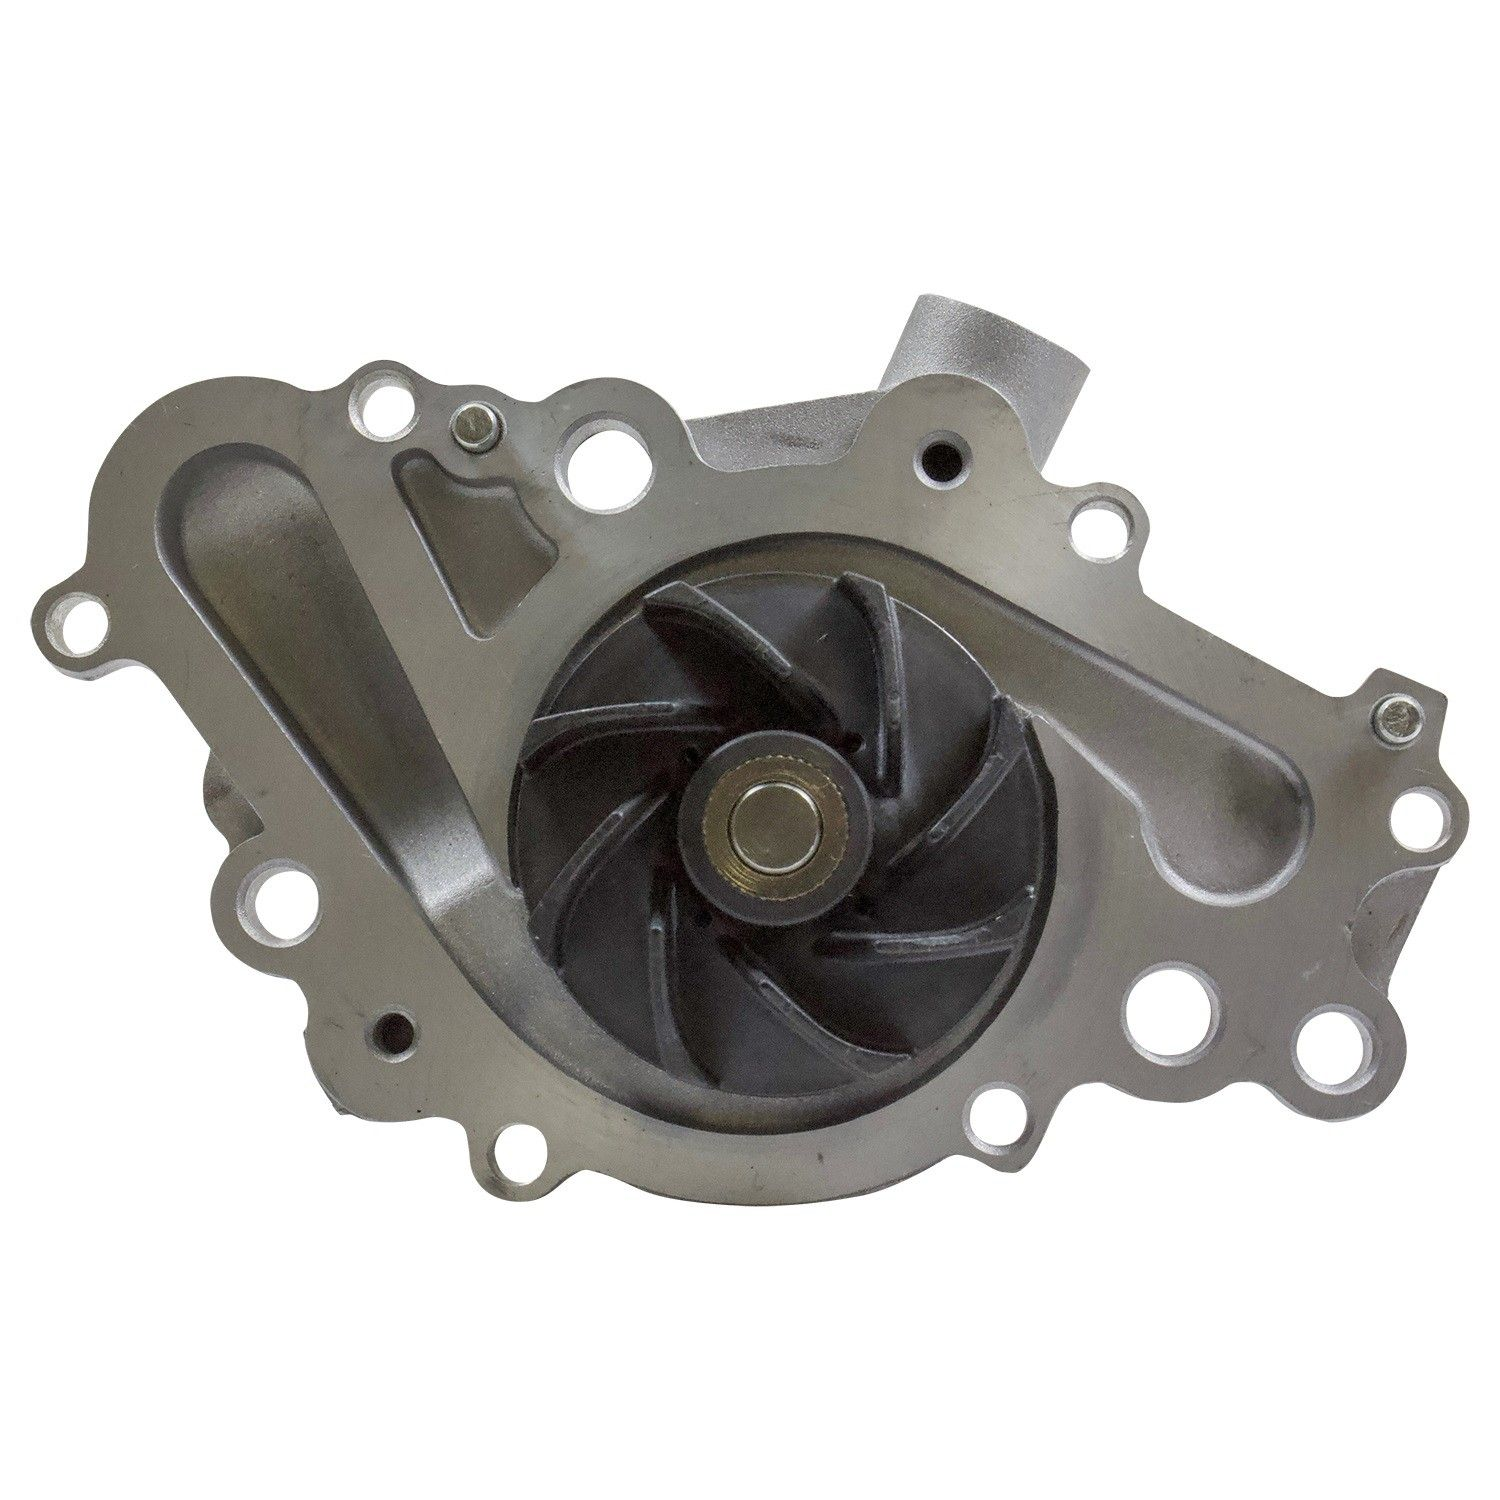 Chrysler 300 Engine Water Pump Replacement Airtex Cardone Dj Rock Timing Belt 2007 Touring 2010 6 Cyl 27l Gmb 120 2000